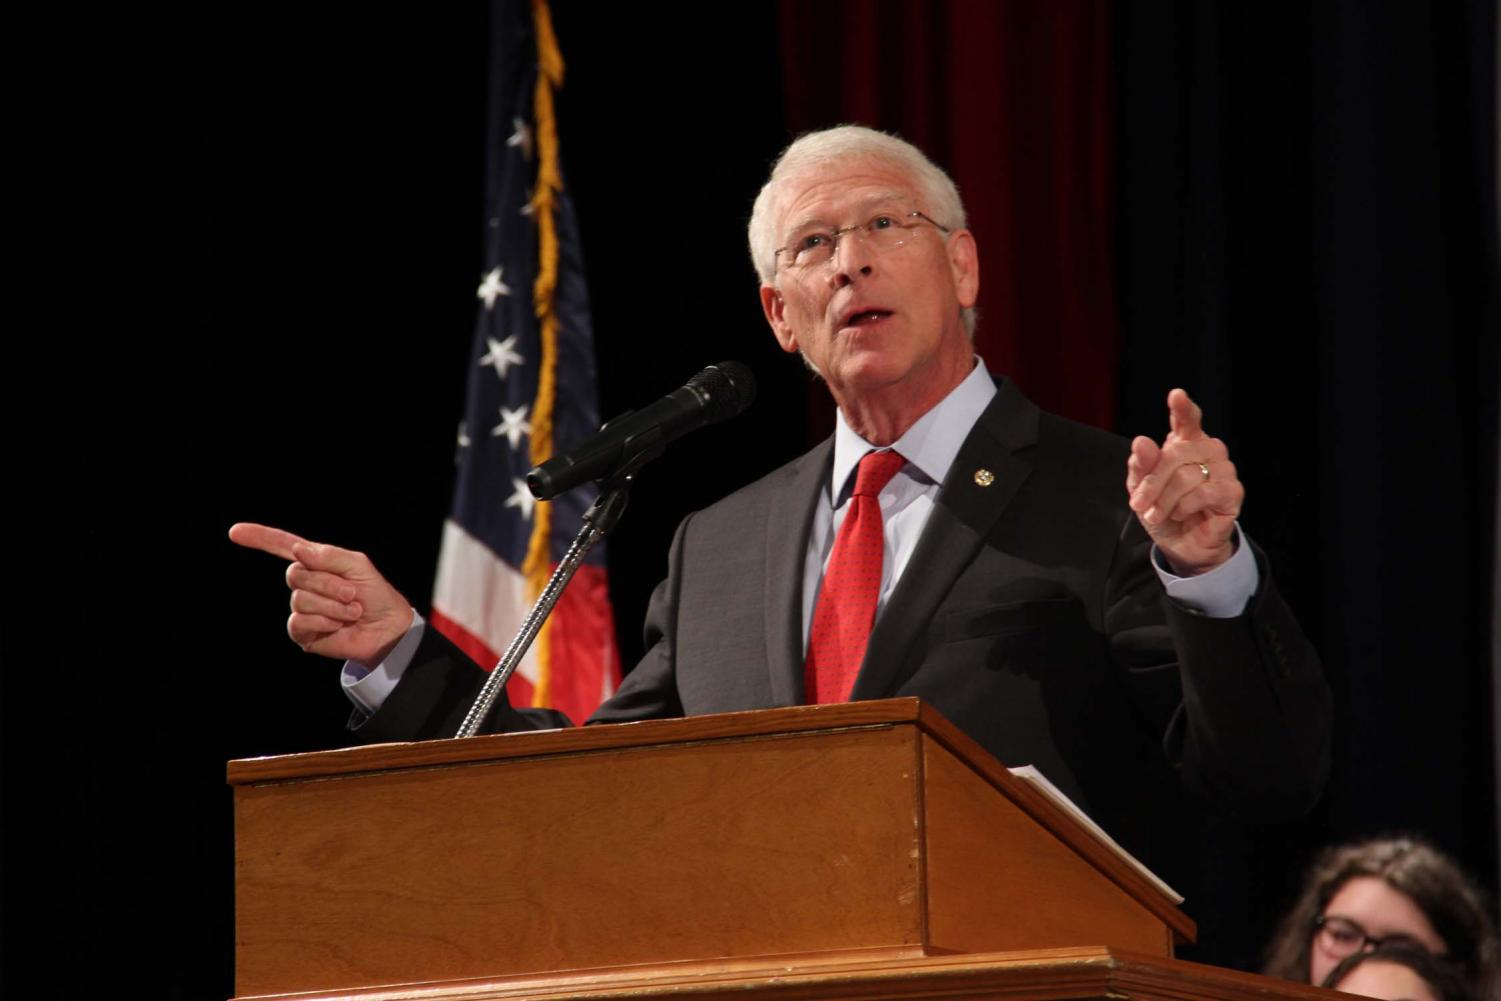 Senator Wicker spoke on the importance and privilege of voting.